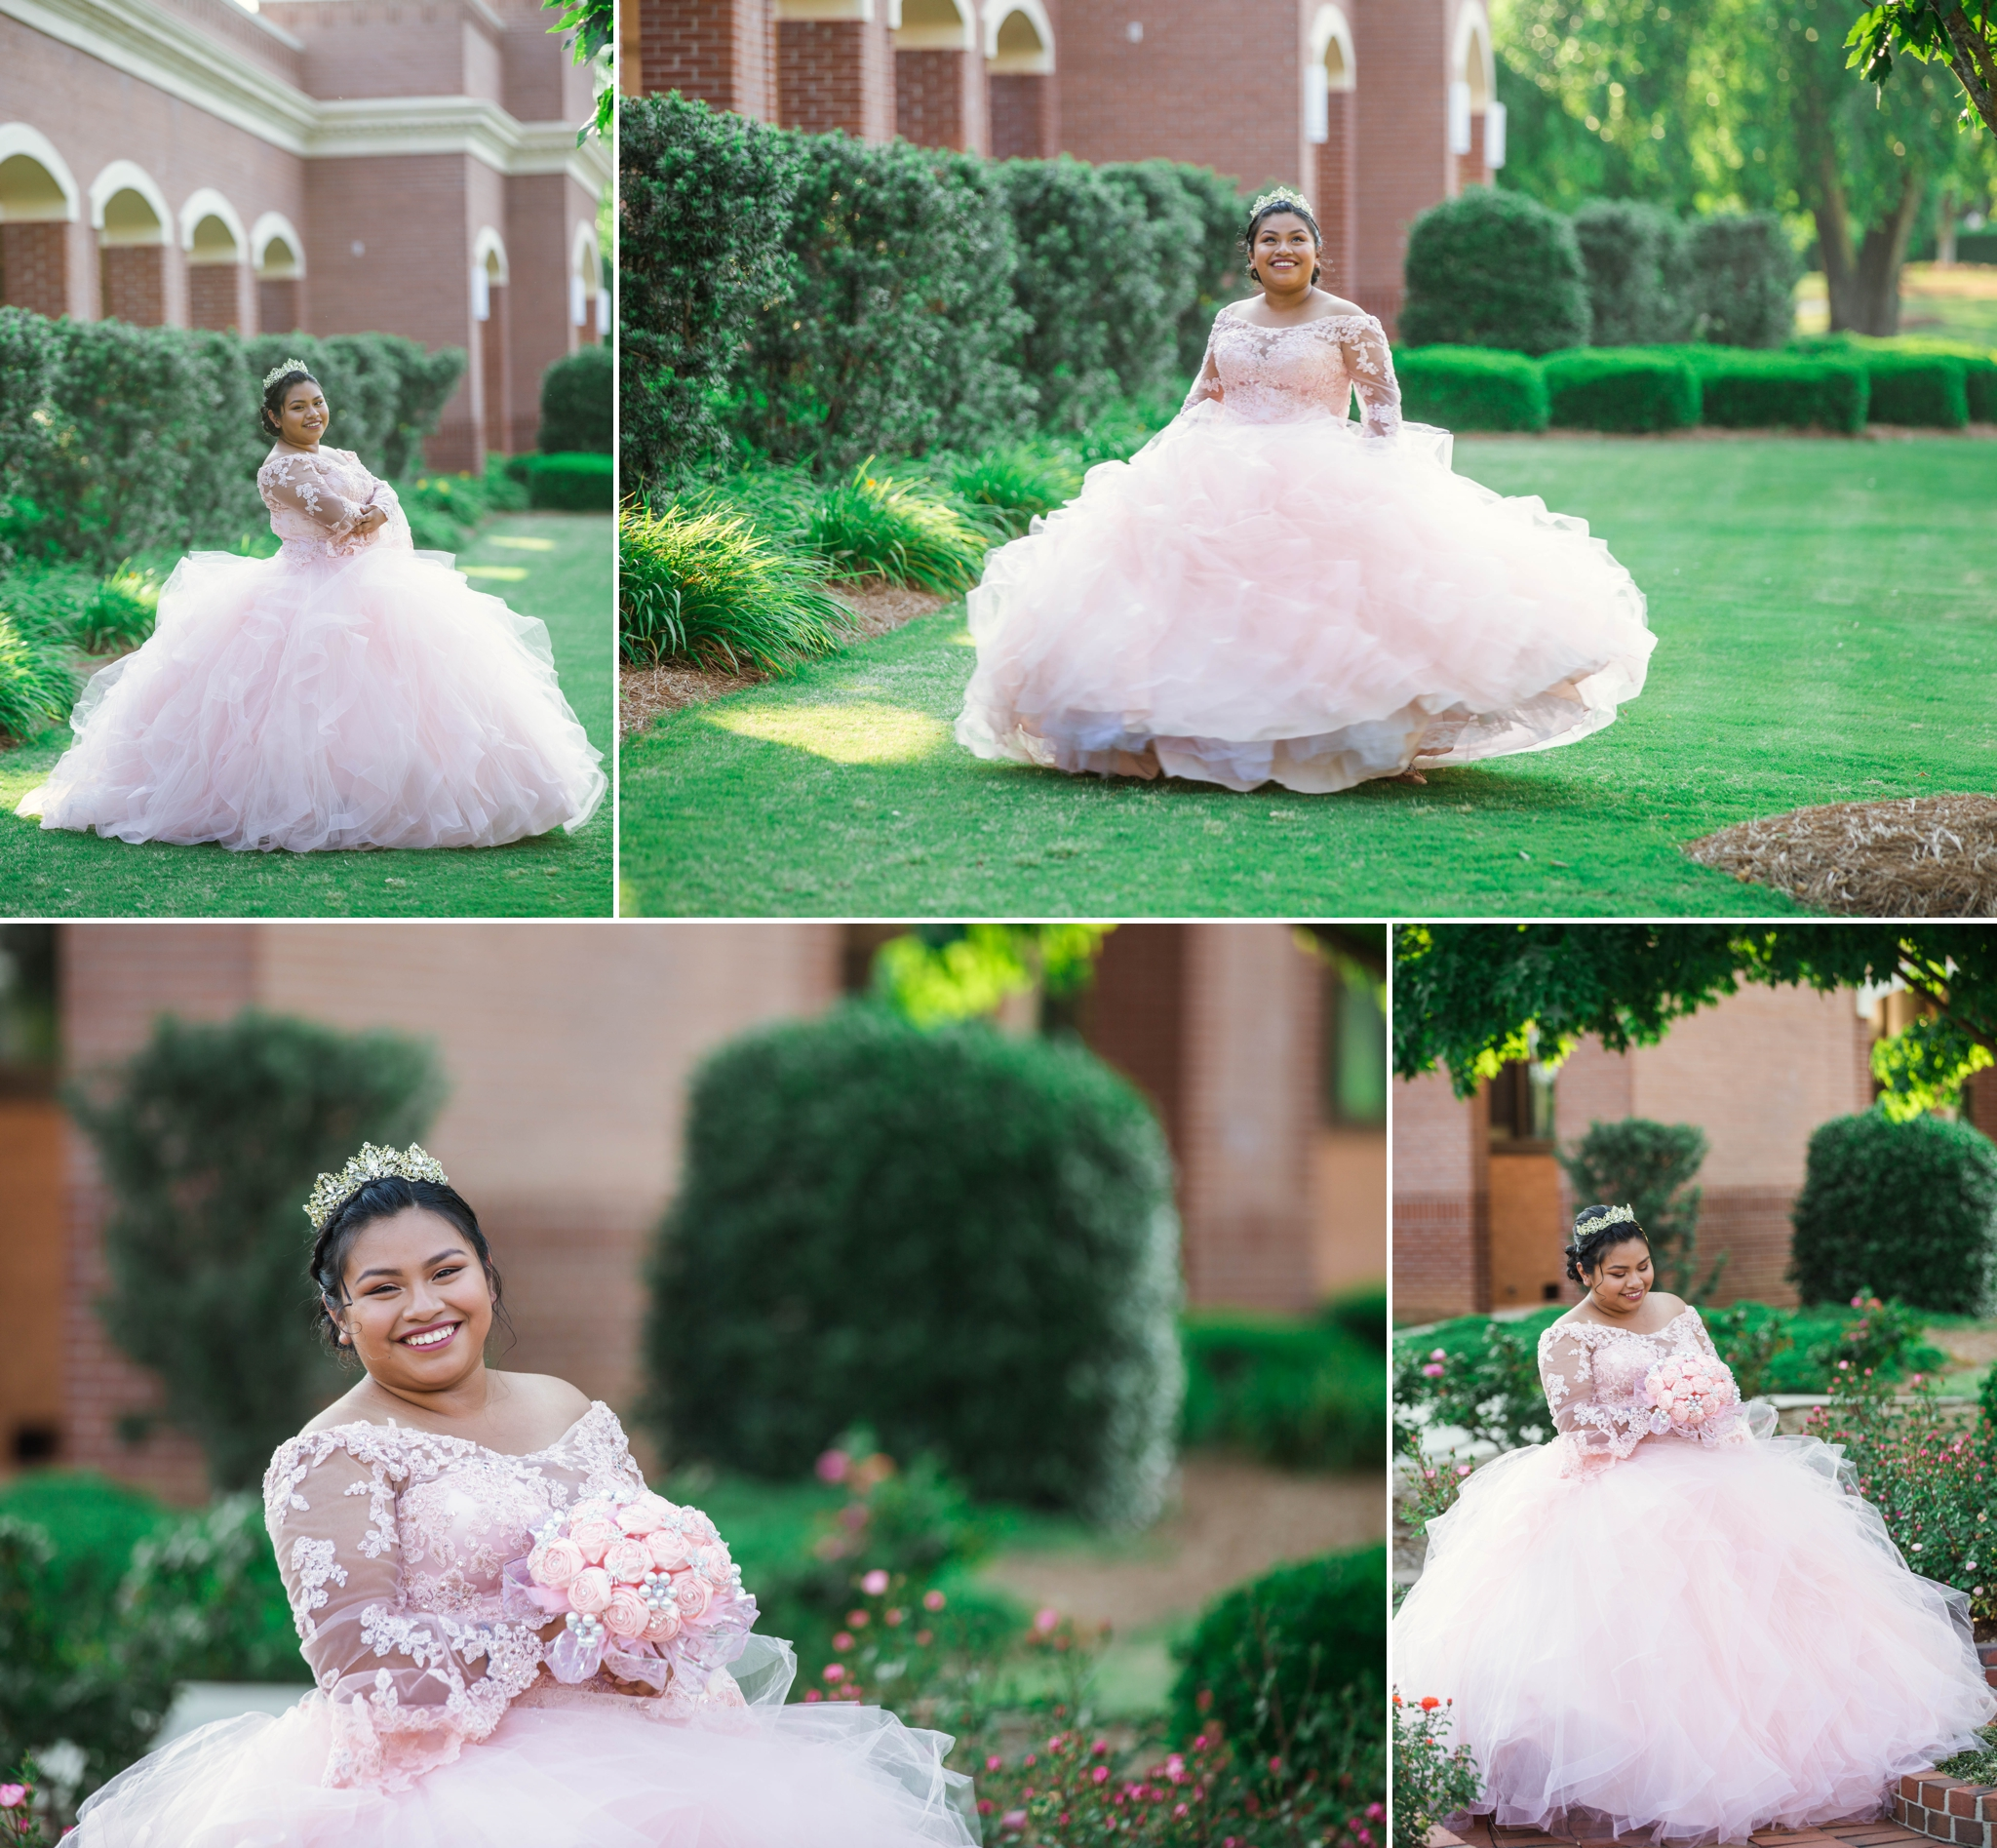 Sweet 16 Photography Session at the FTCC Rose Garden - Fayetteville NC Senior Photographer